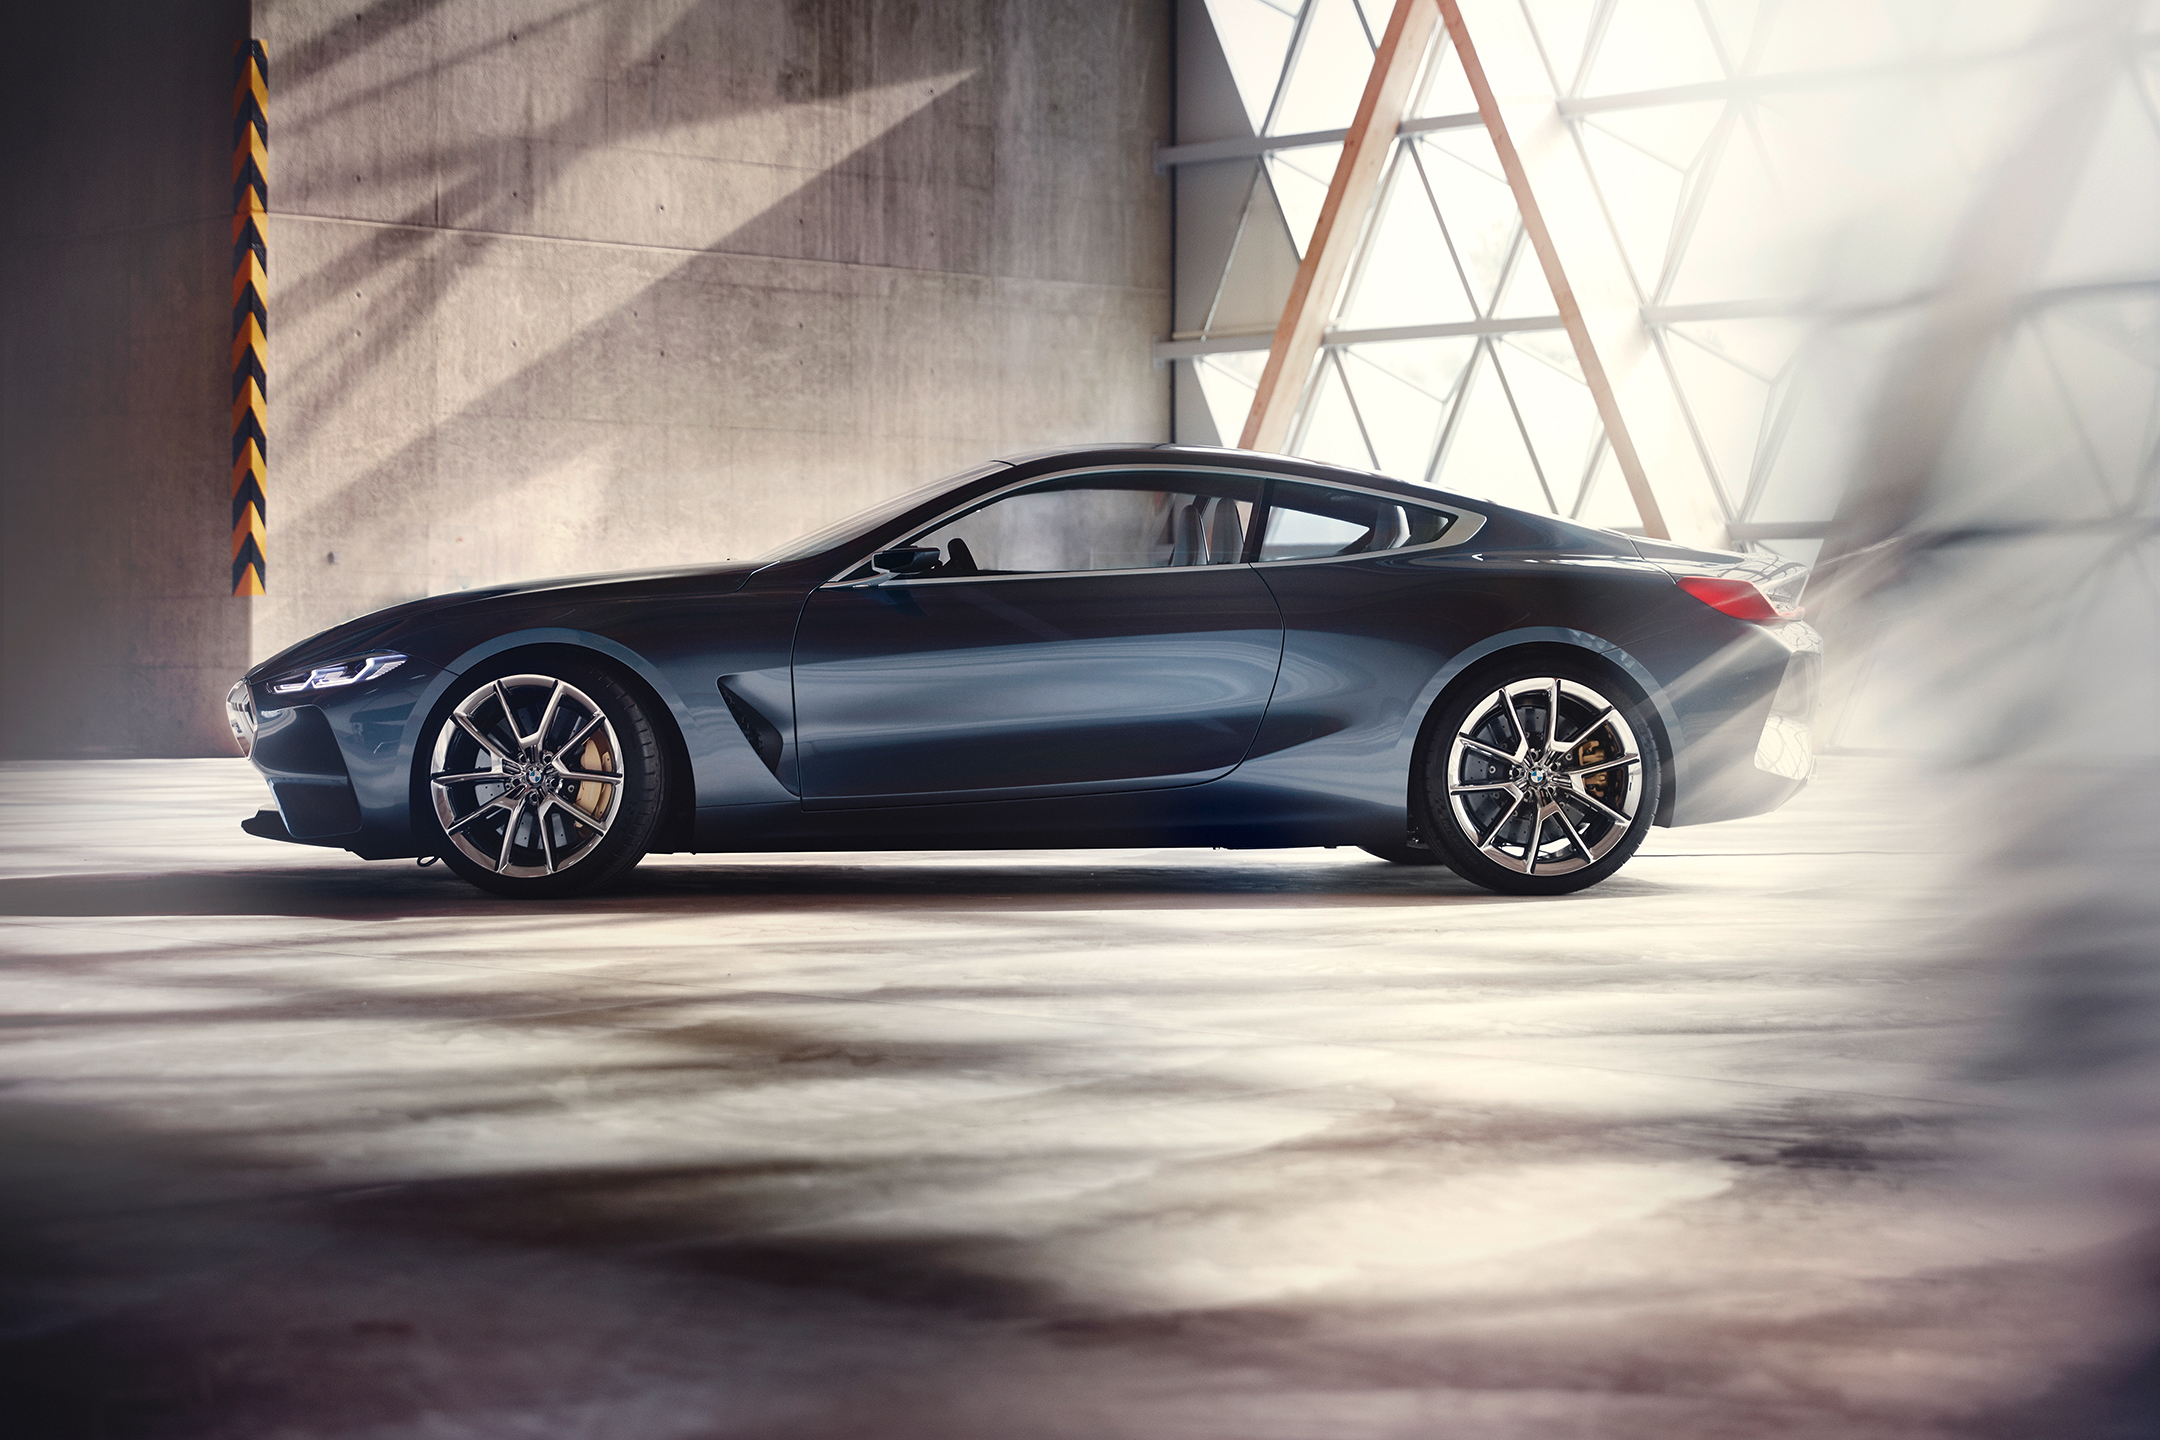 BMW concept 8 series - 2017 - side-face / profil